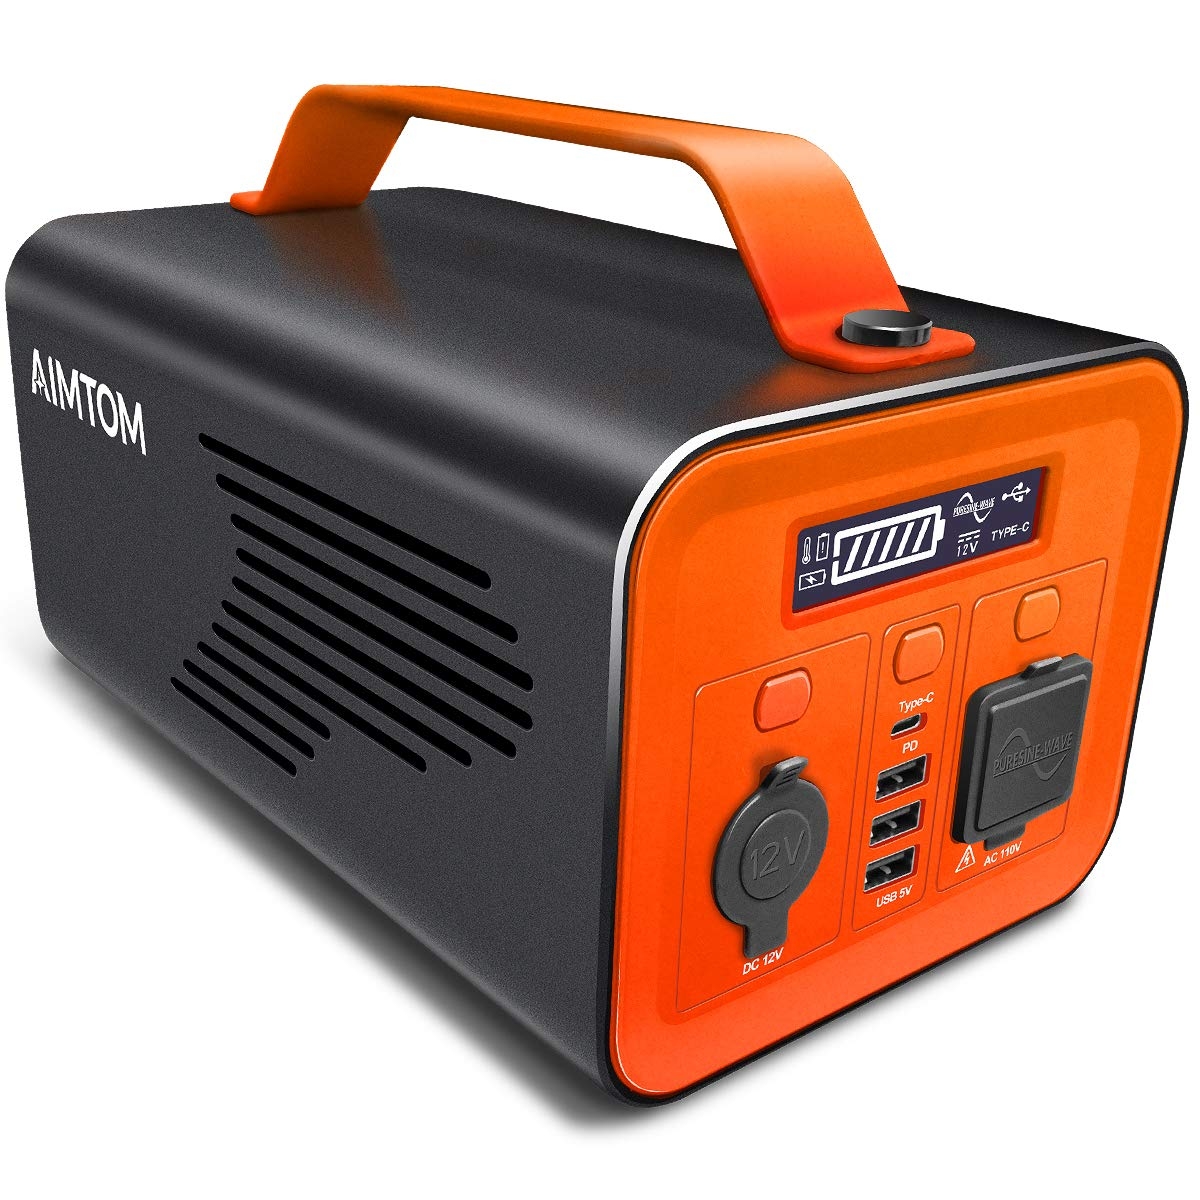 AIMTOM 230Wh Portable Power Station